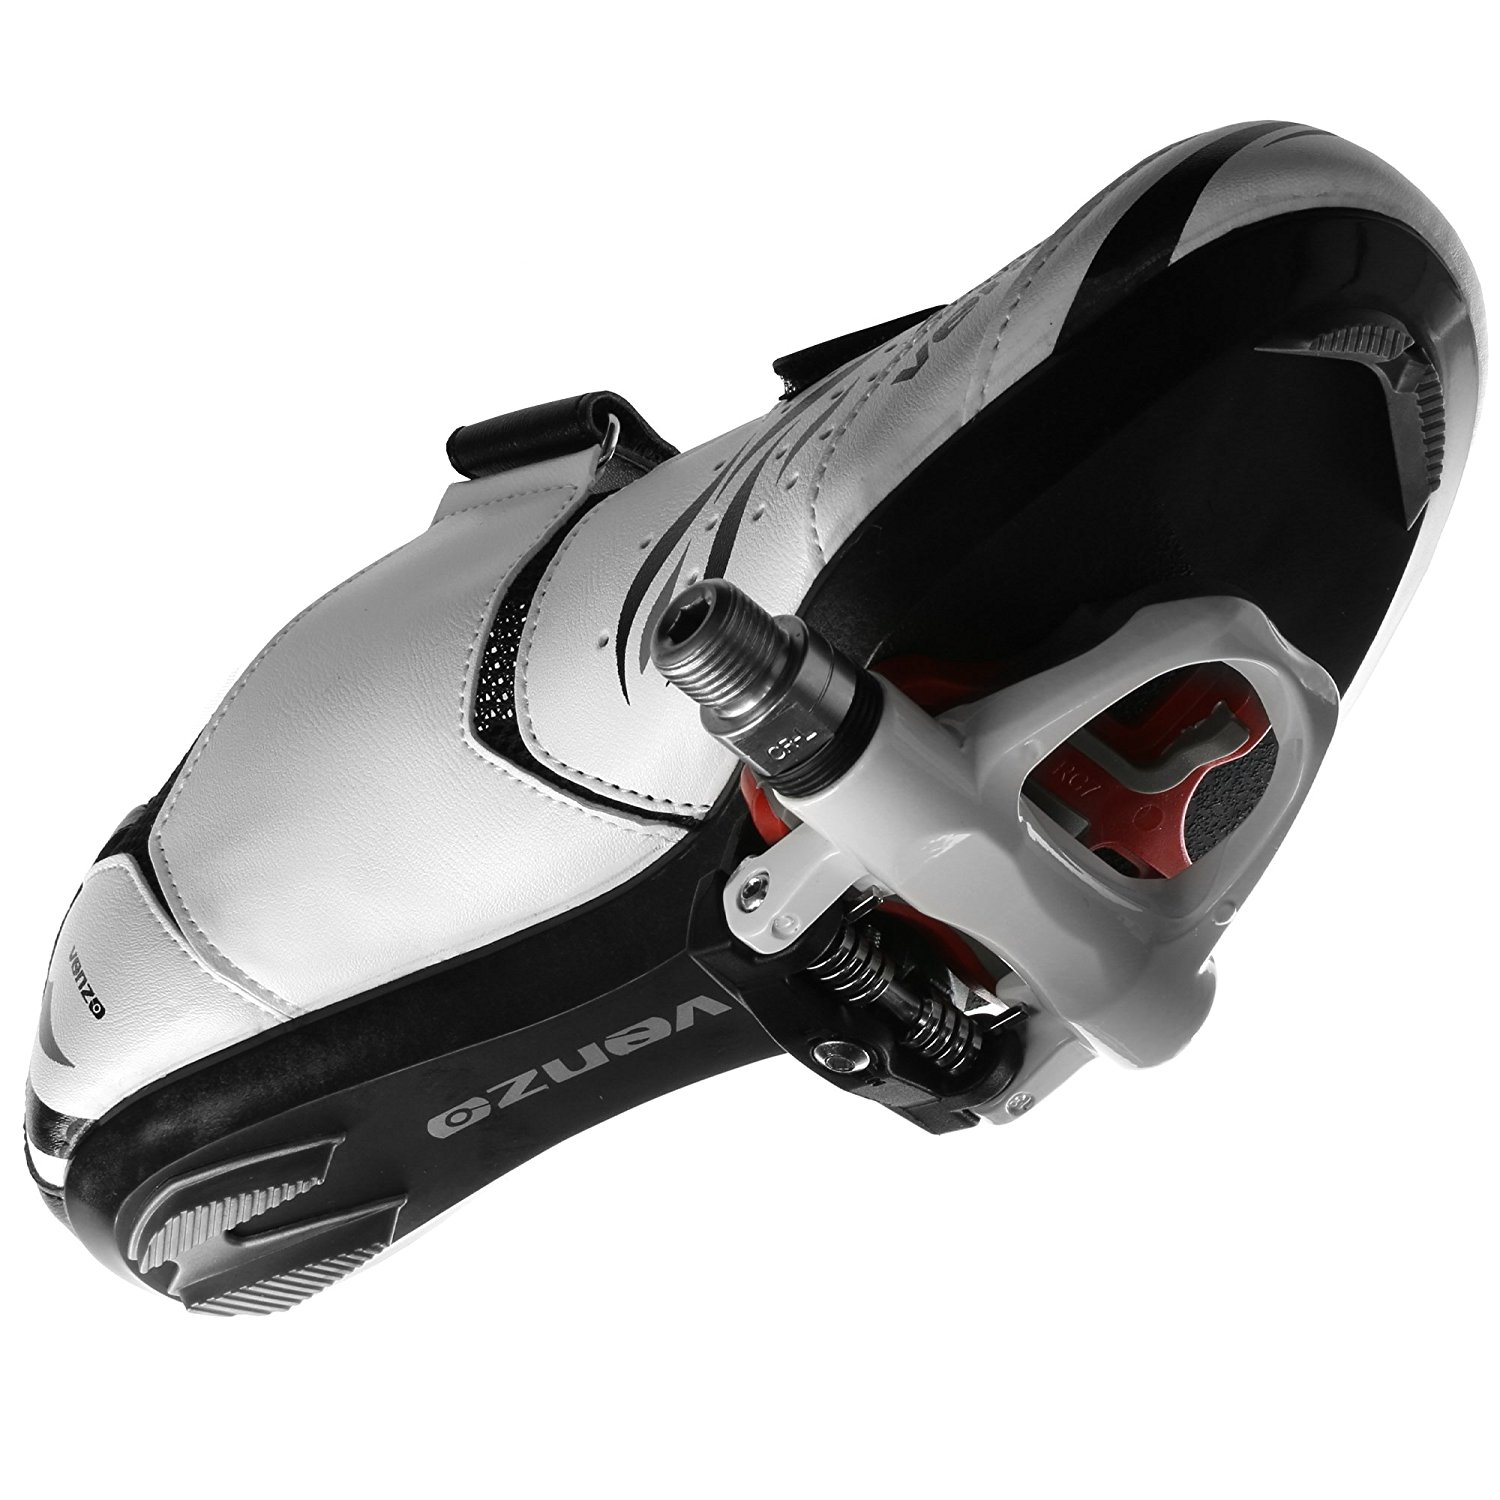 5043776f9c4 Venzo Road Bike For Shimano SPD SL Look Cycling Bicycle Shoes   Sealed  Pedals 40